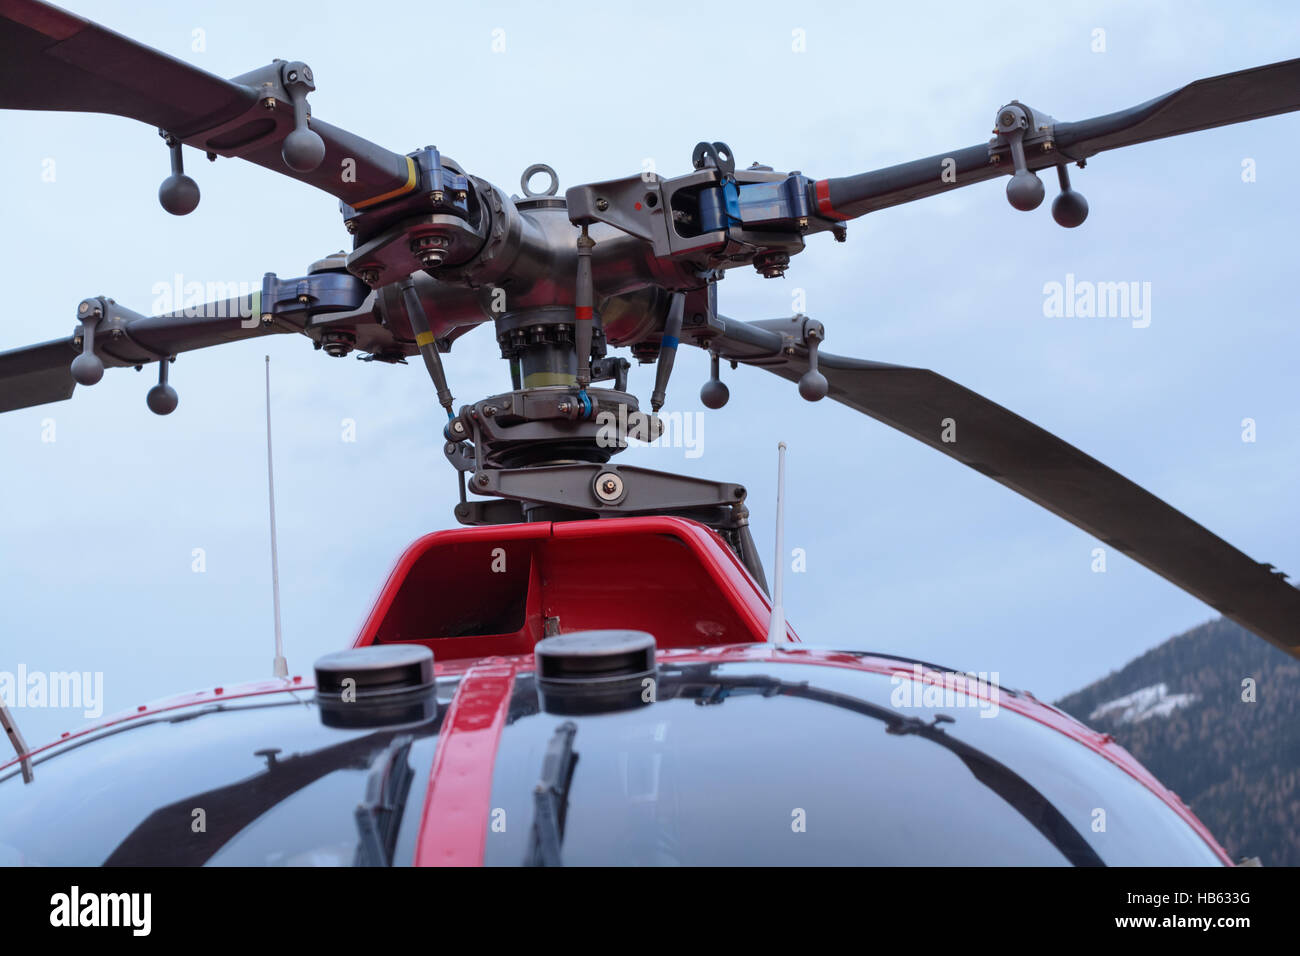 Rotor blades of a helicopter - Closeup - Stock Image